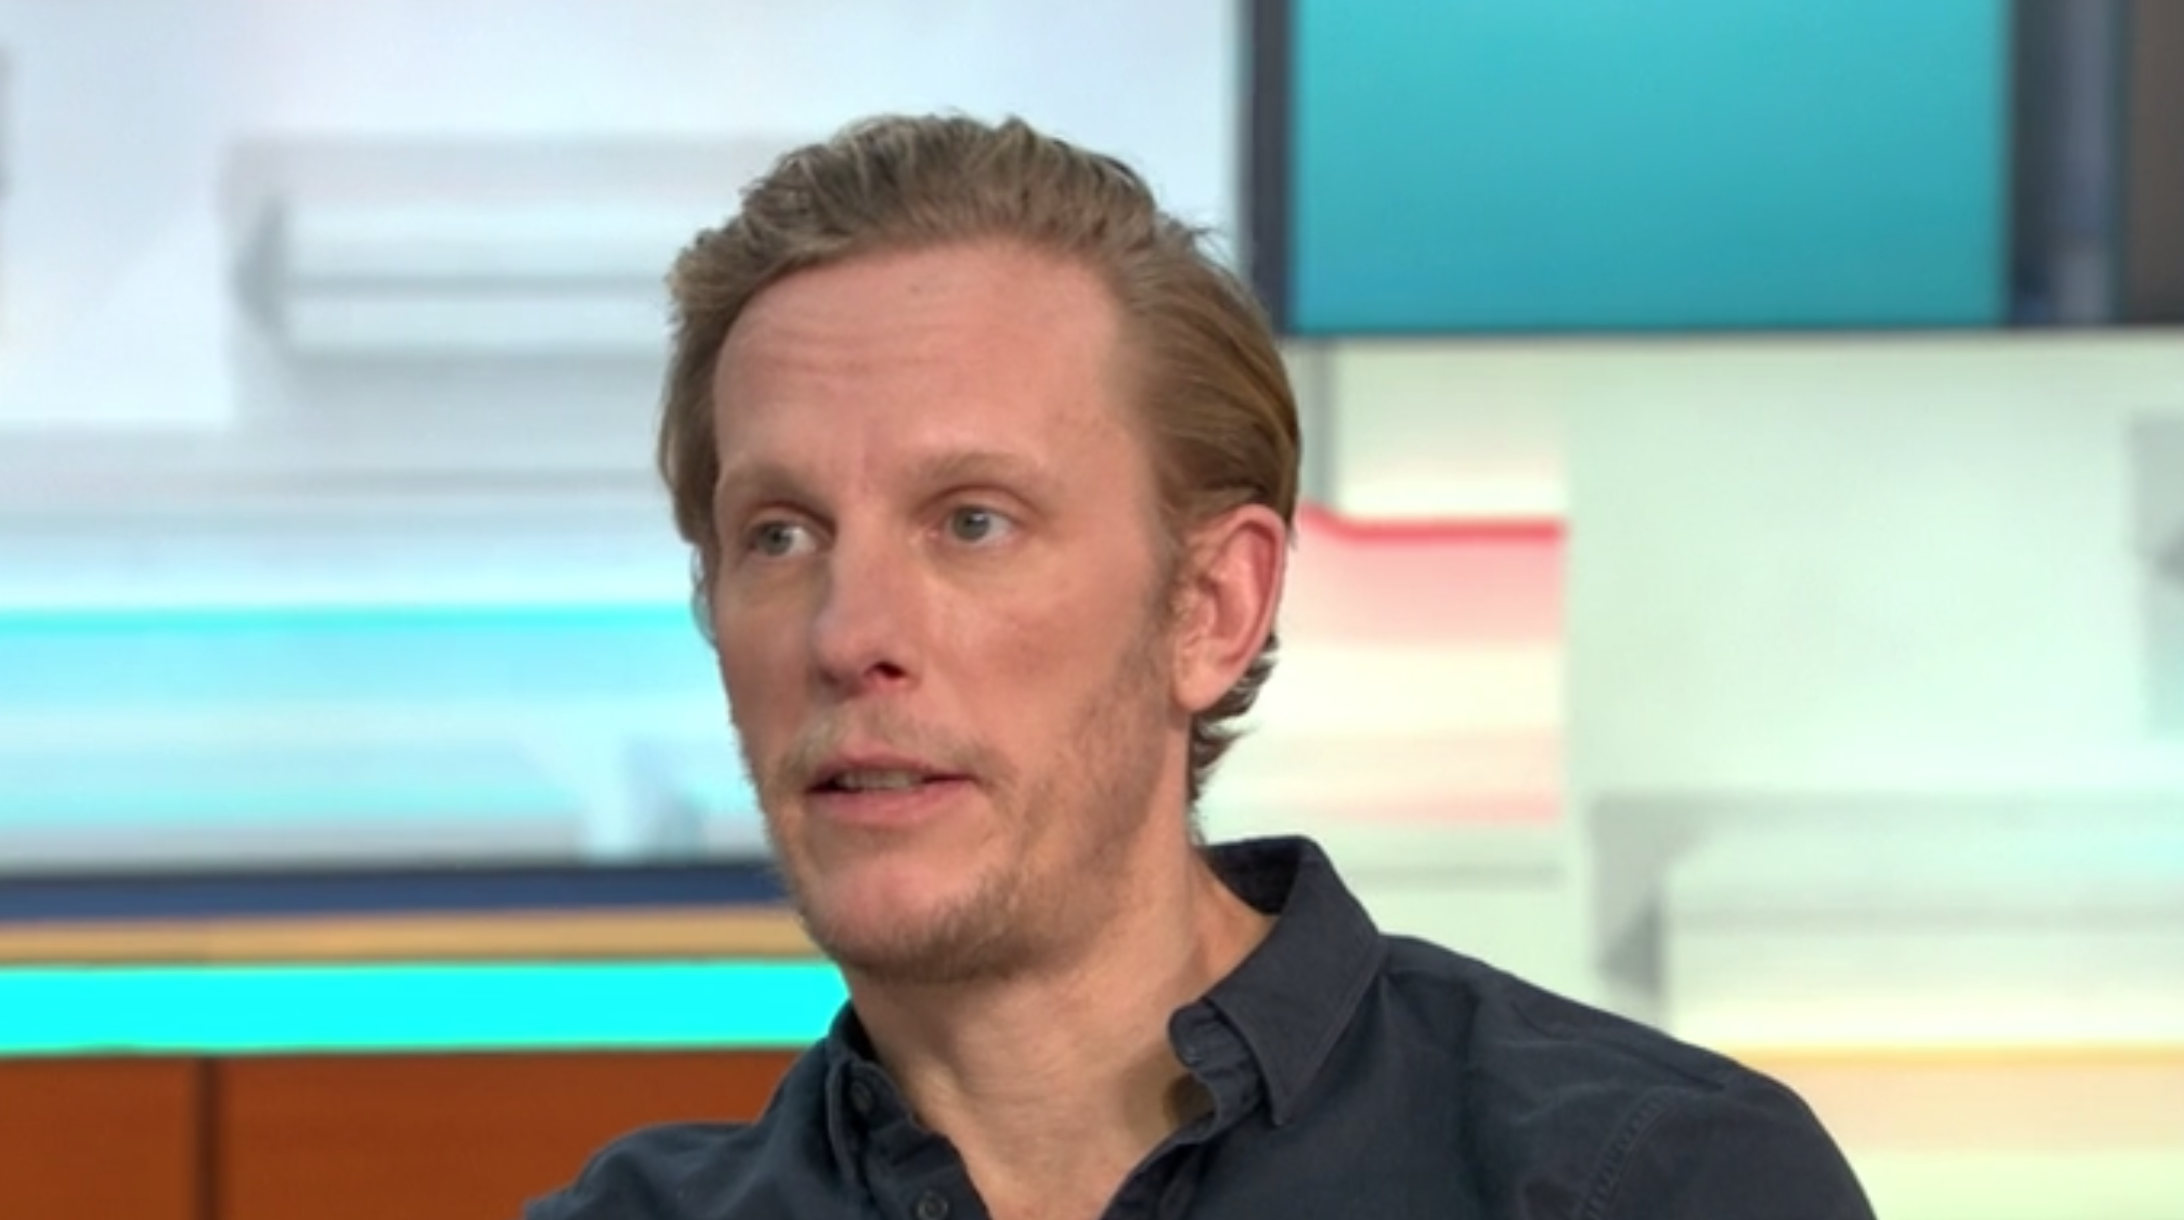 Laurence Fox reveals he's had death threats following 'race row' on Question Time